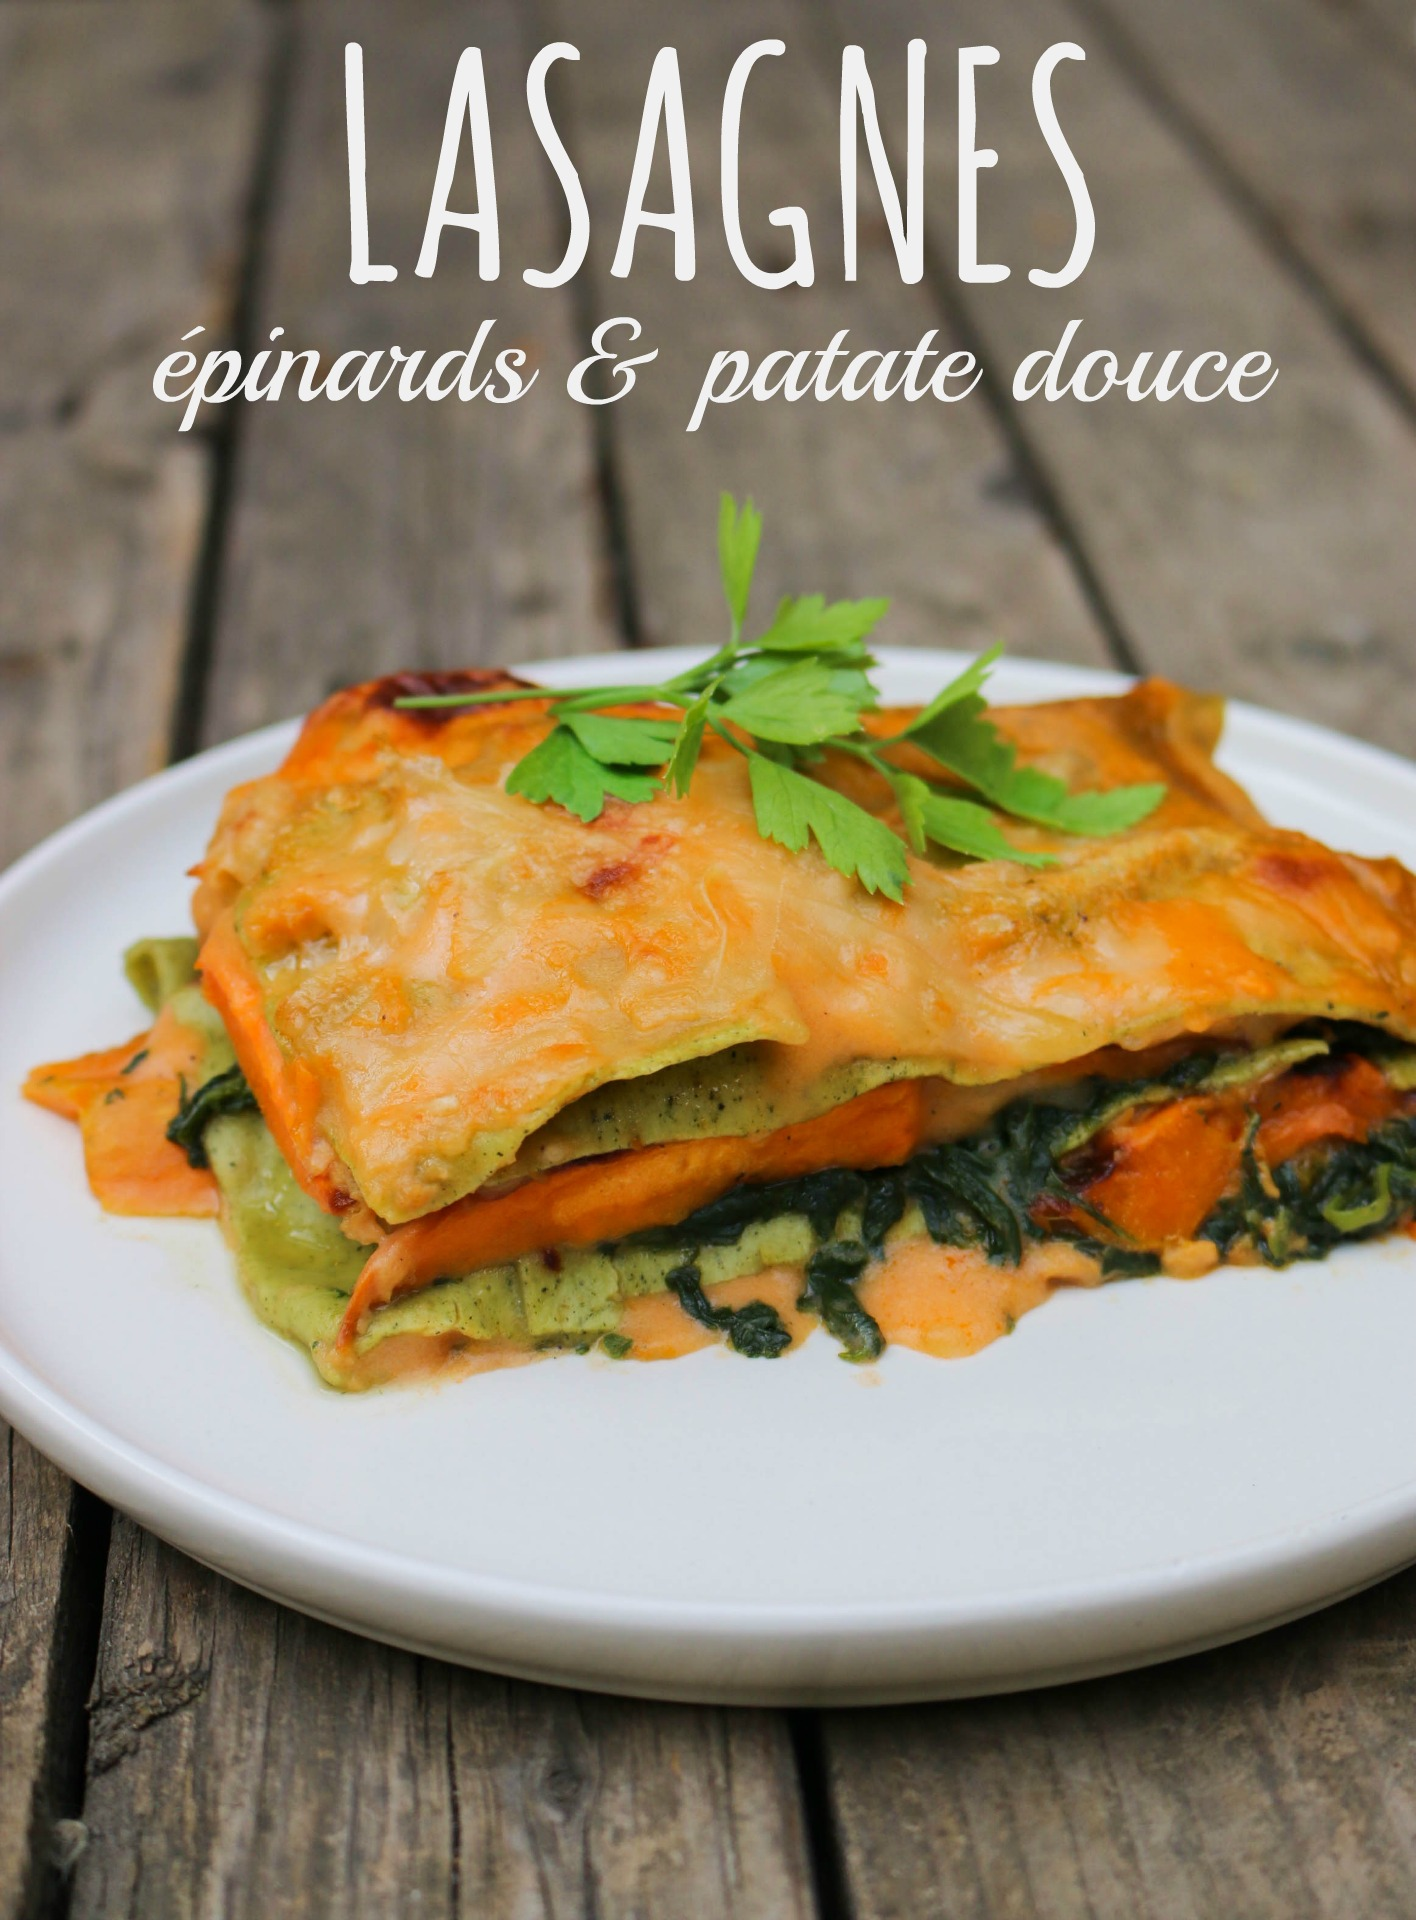 lasagnes épinards patate douce vegan